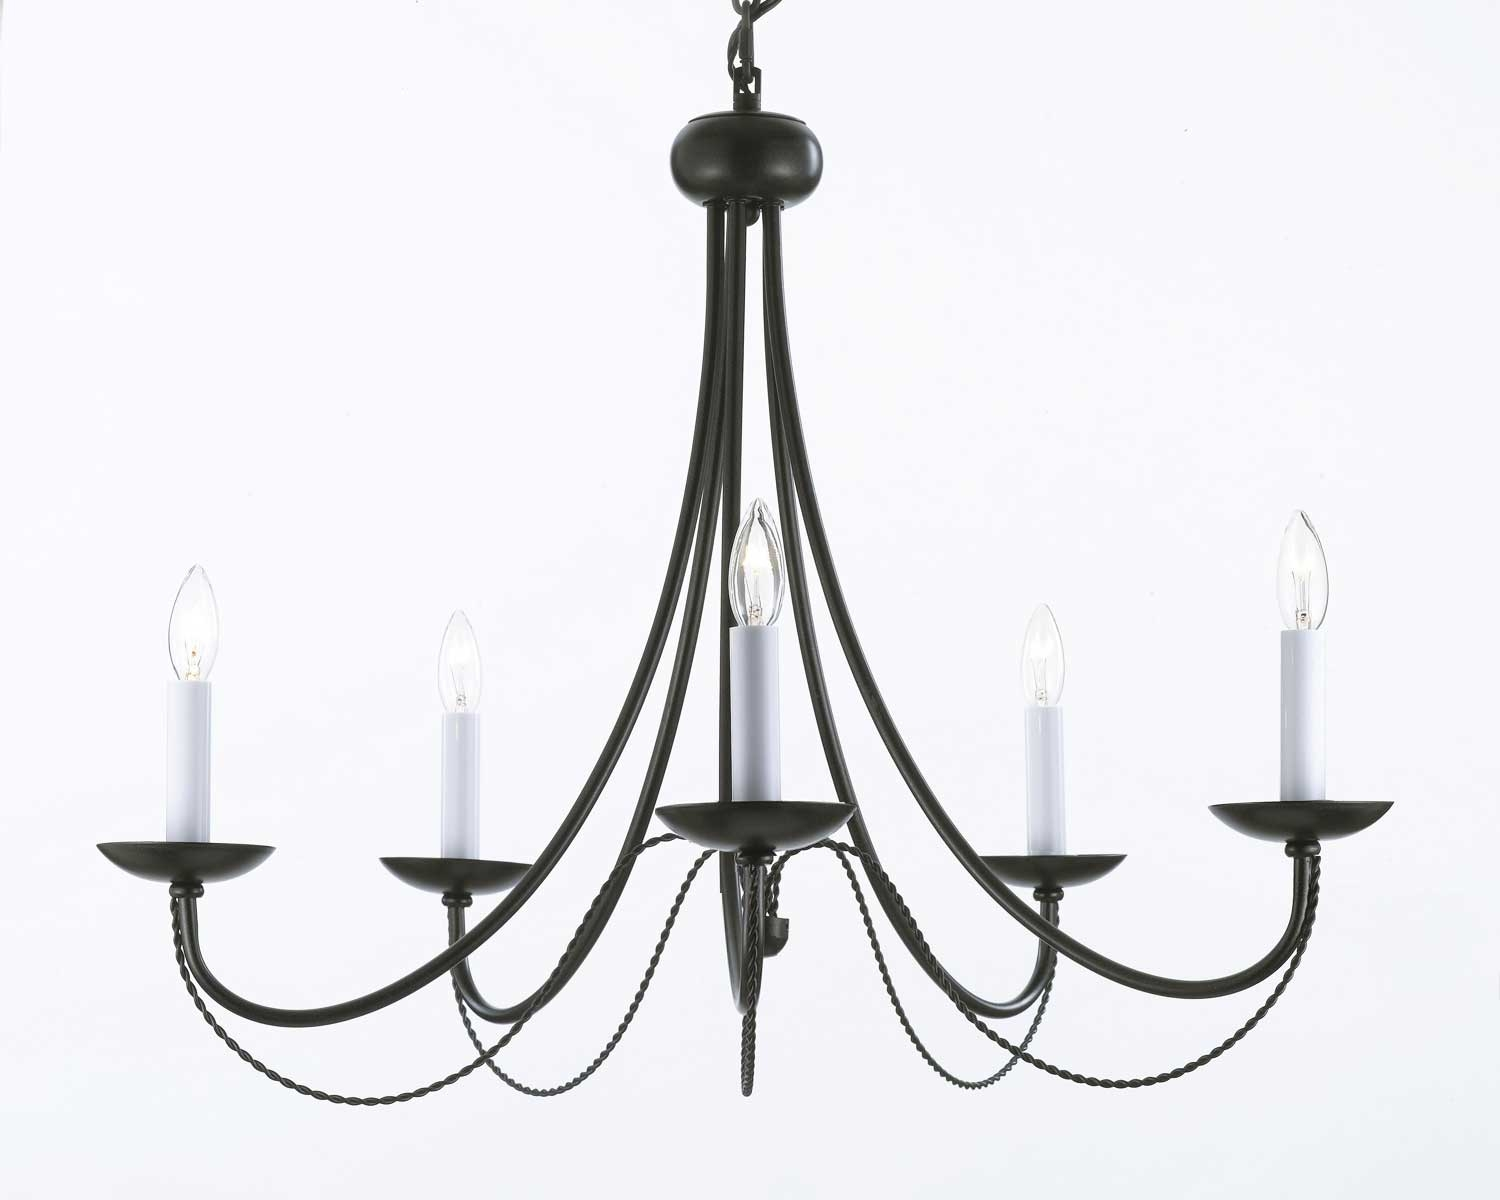 A7 4035 Gallery Wrought Without Crystal Wrought Iron Chandelier Inside Modern Wrought Iron Chandeliers (#2 of 12)